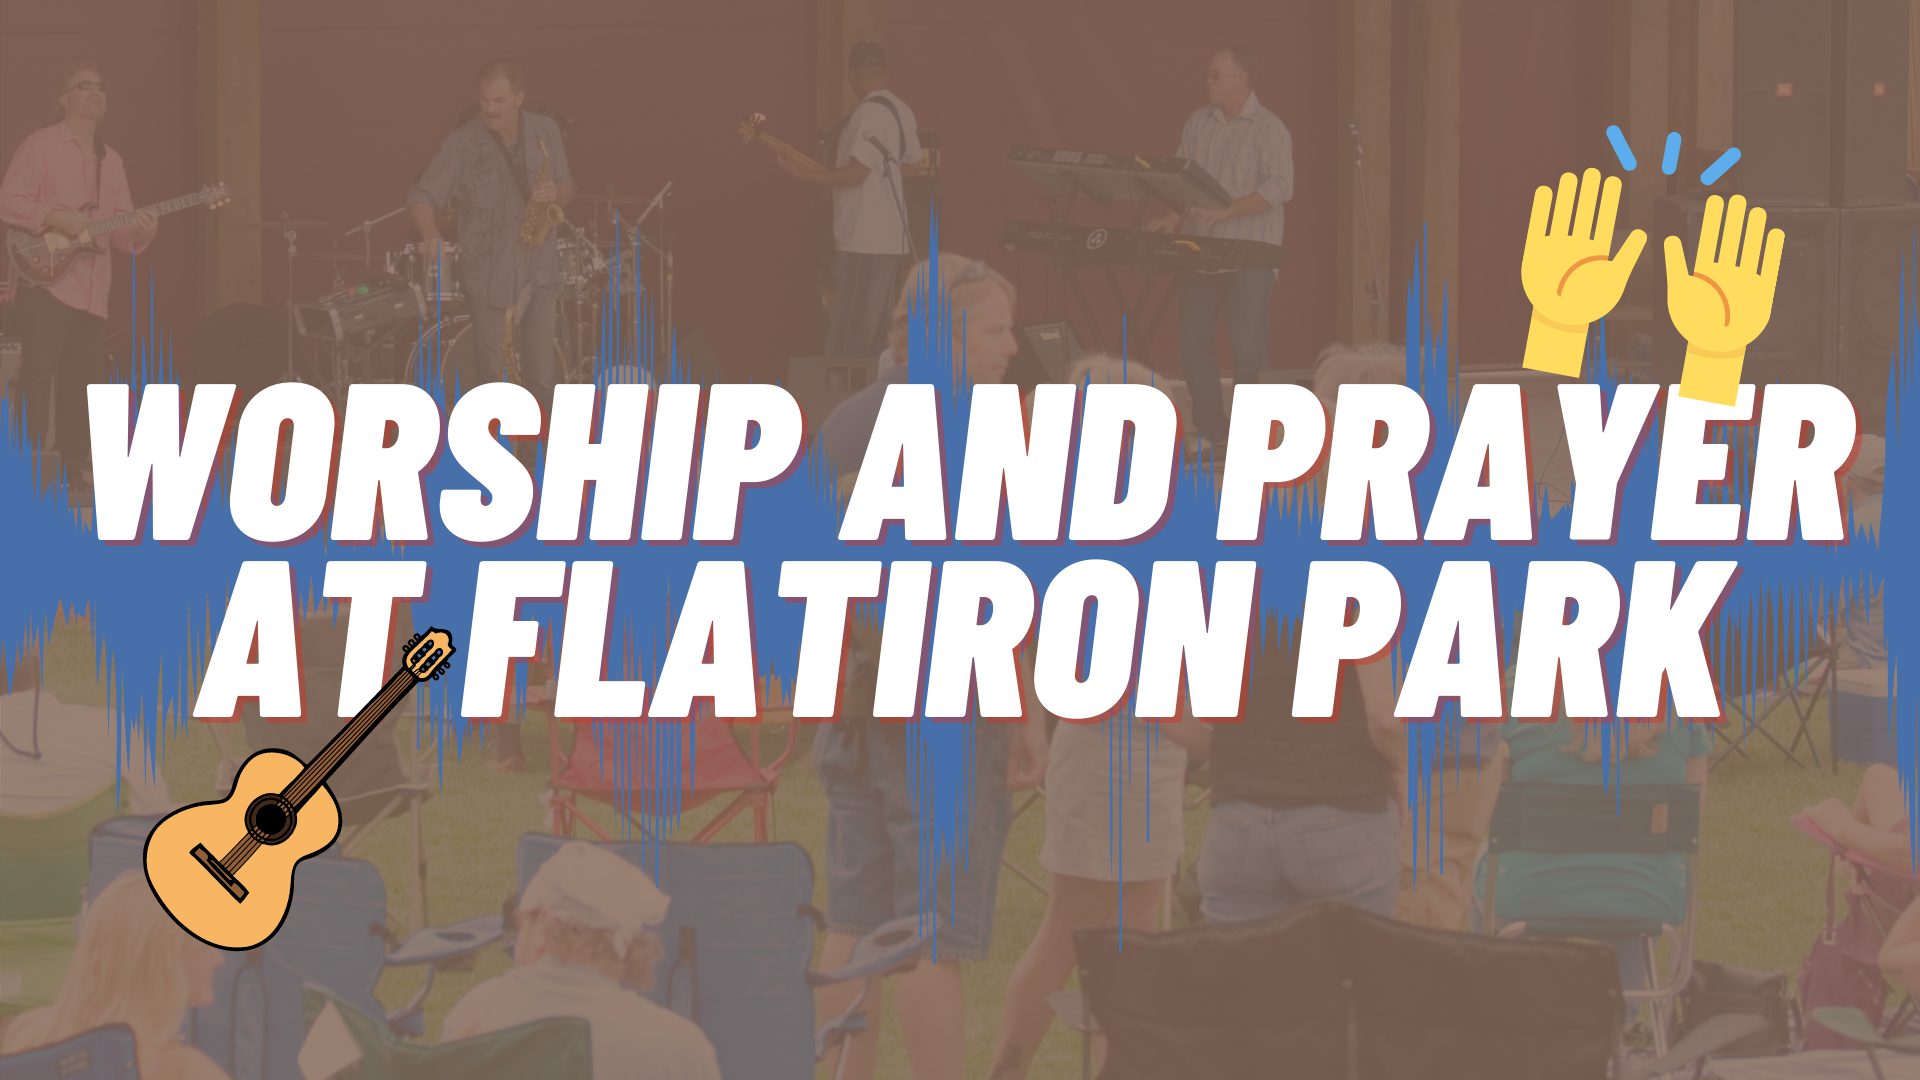 Worship and prayer At Flatiron Park image